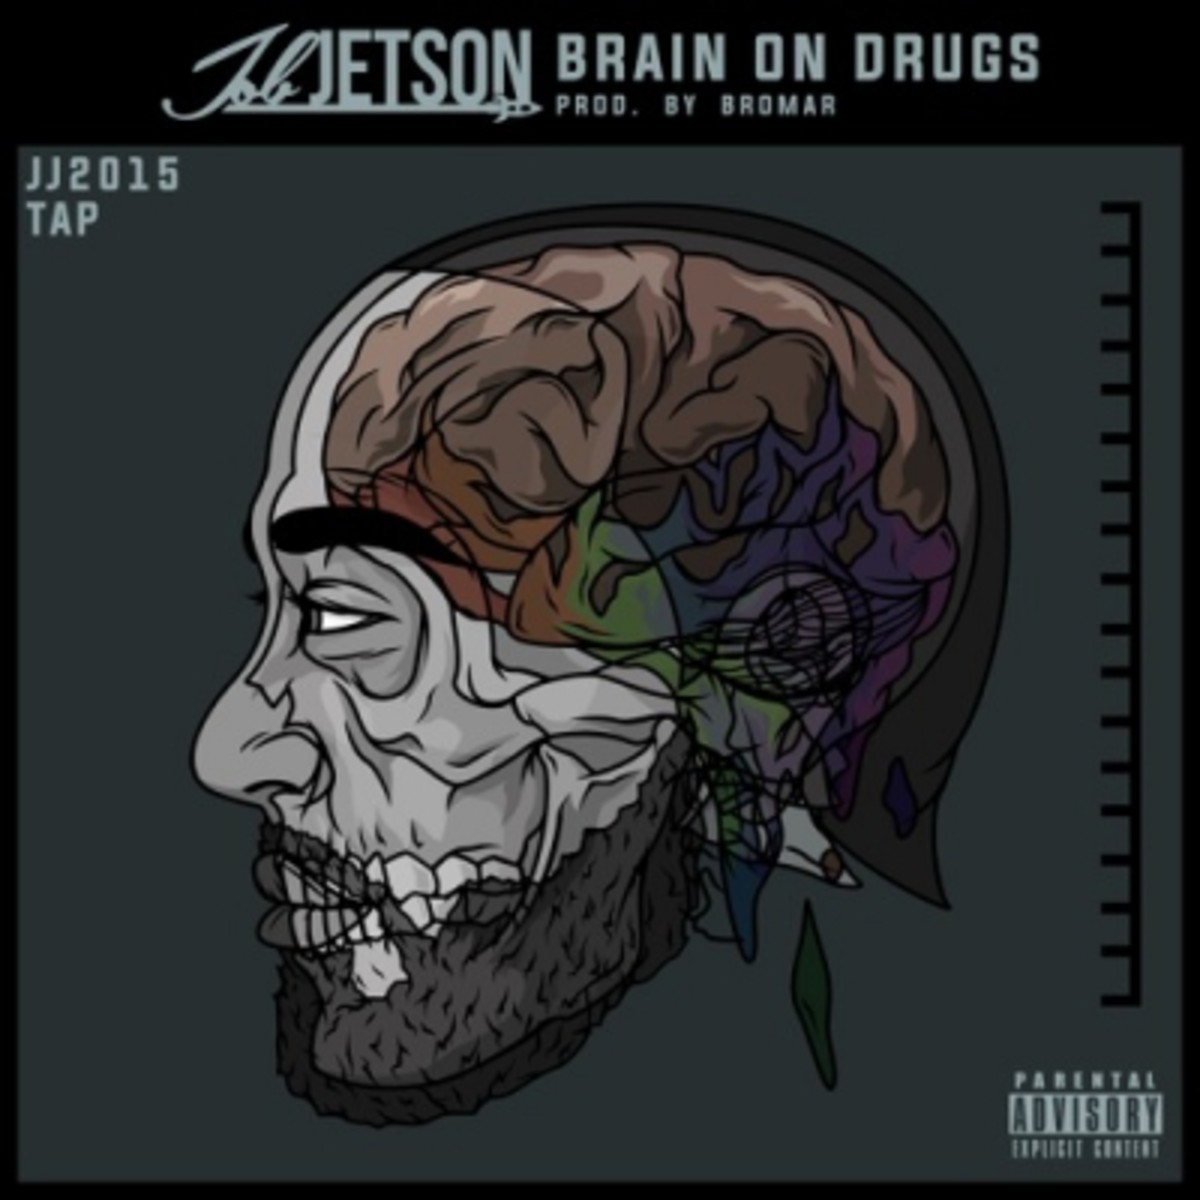 job-jetson-brain-on-drugs.jpg